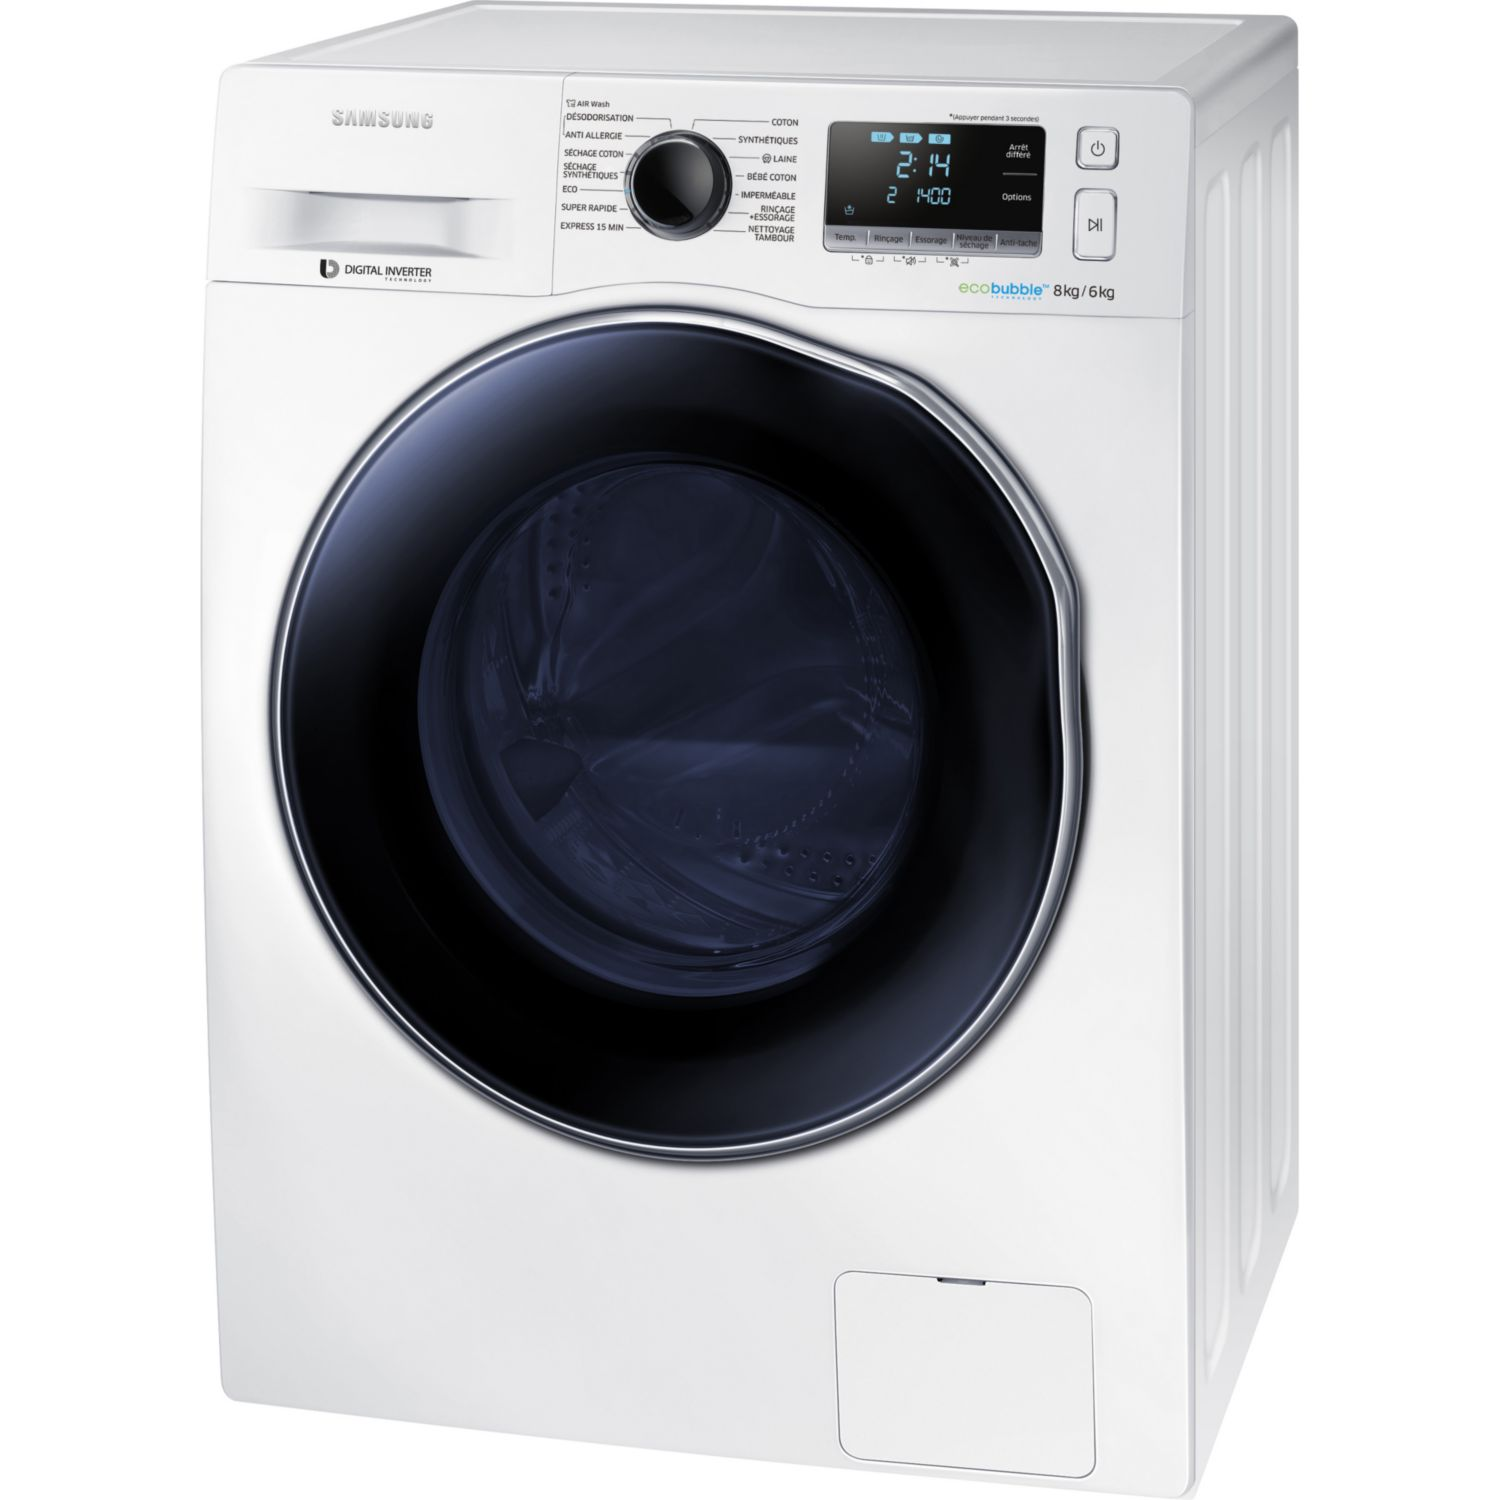 lave linge samsung wf80f5e3u4w lave linge samsung samsung lave linge crystal blue pub tv on. Black Bedroom Furniture Sets. Home Design Ideas